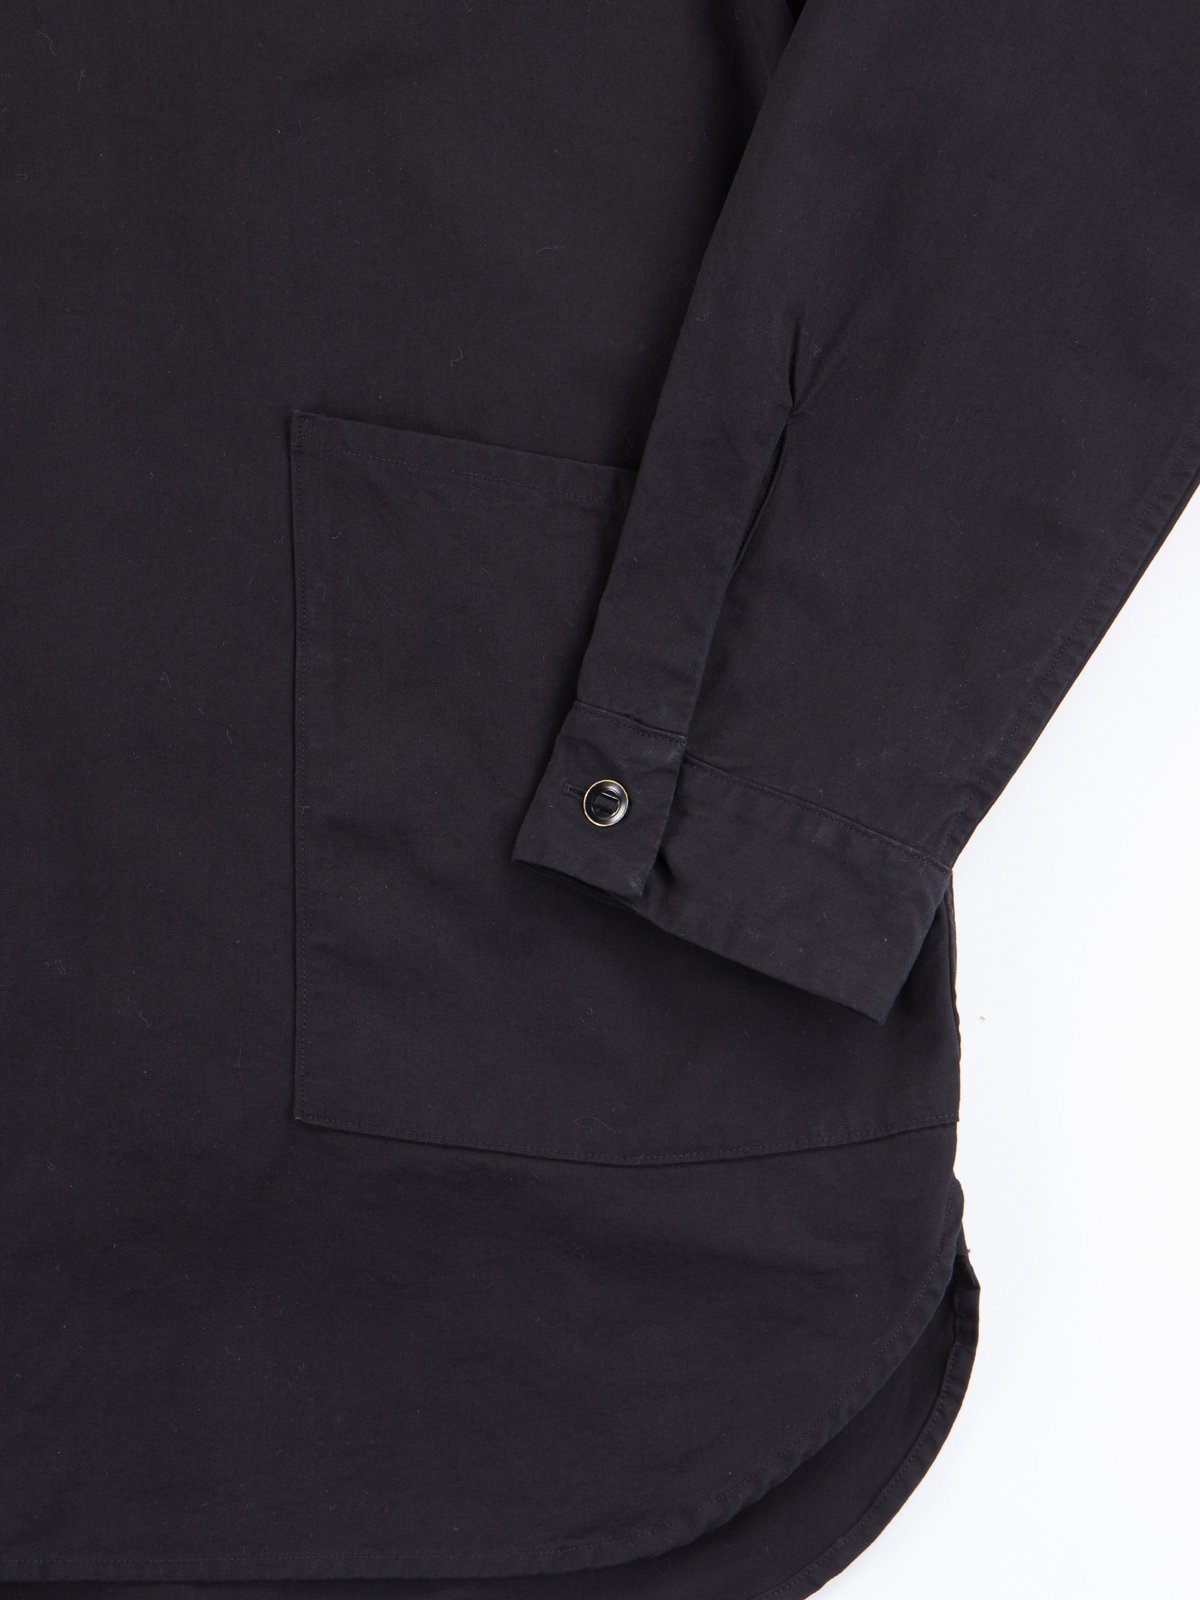 Black Gardener Shirt Jacket - Image 3